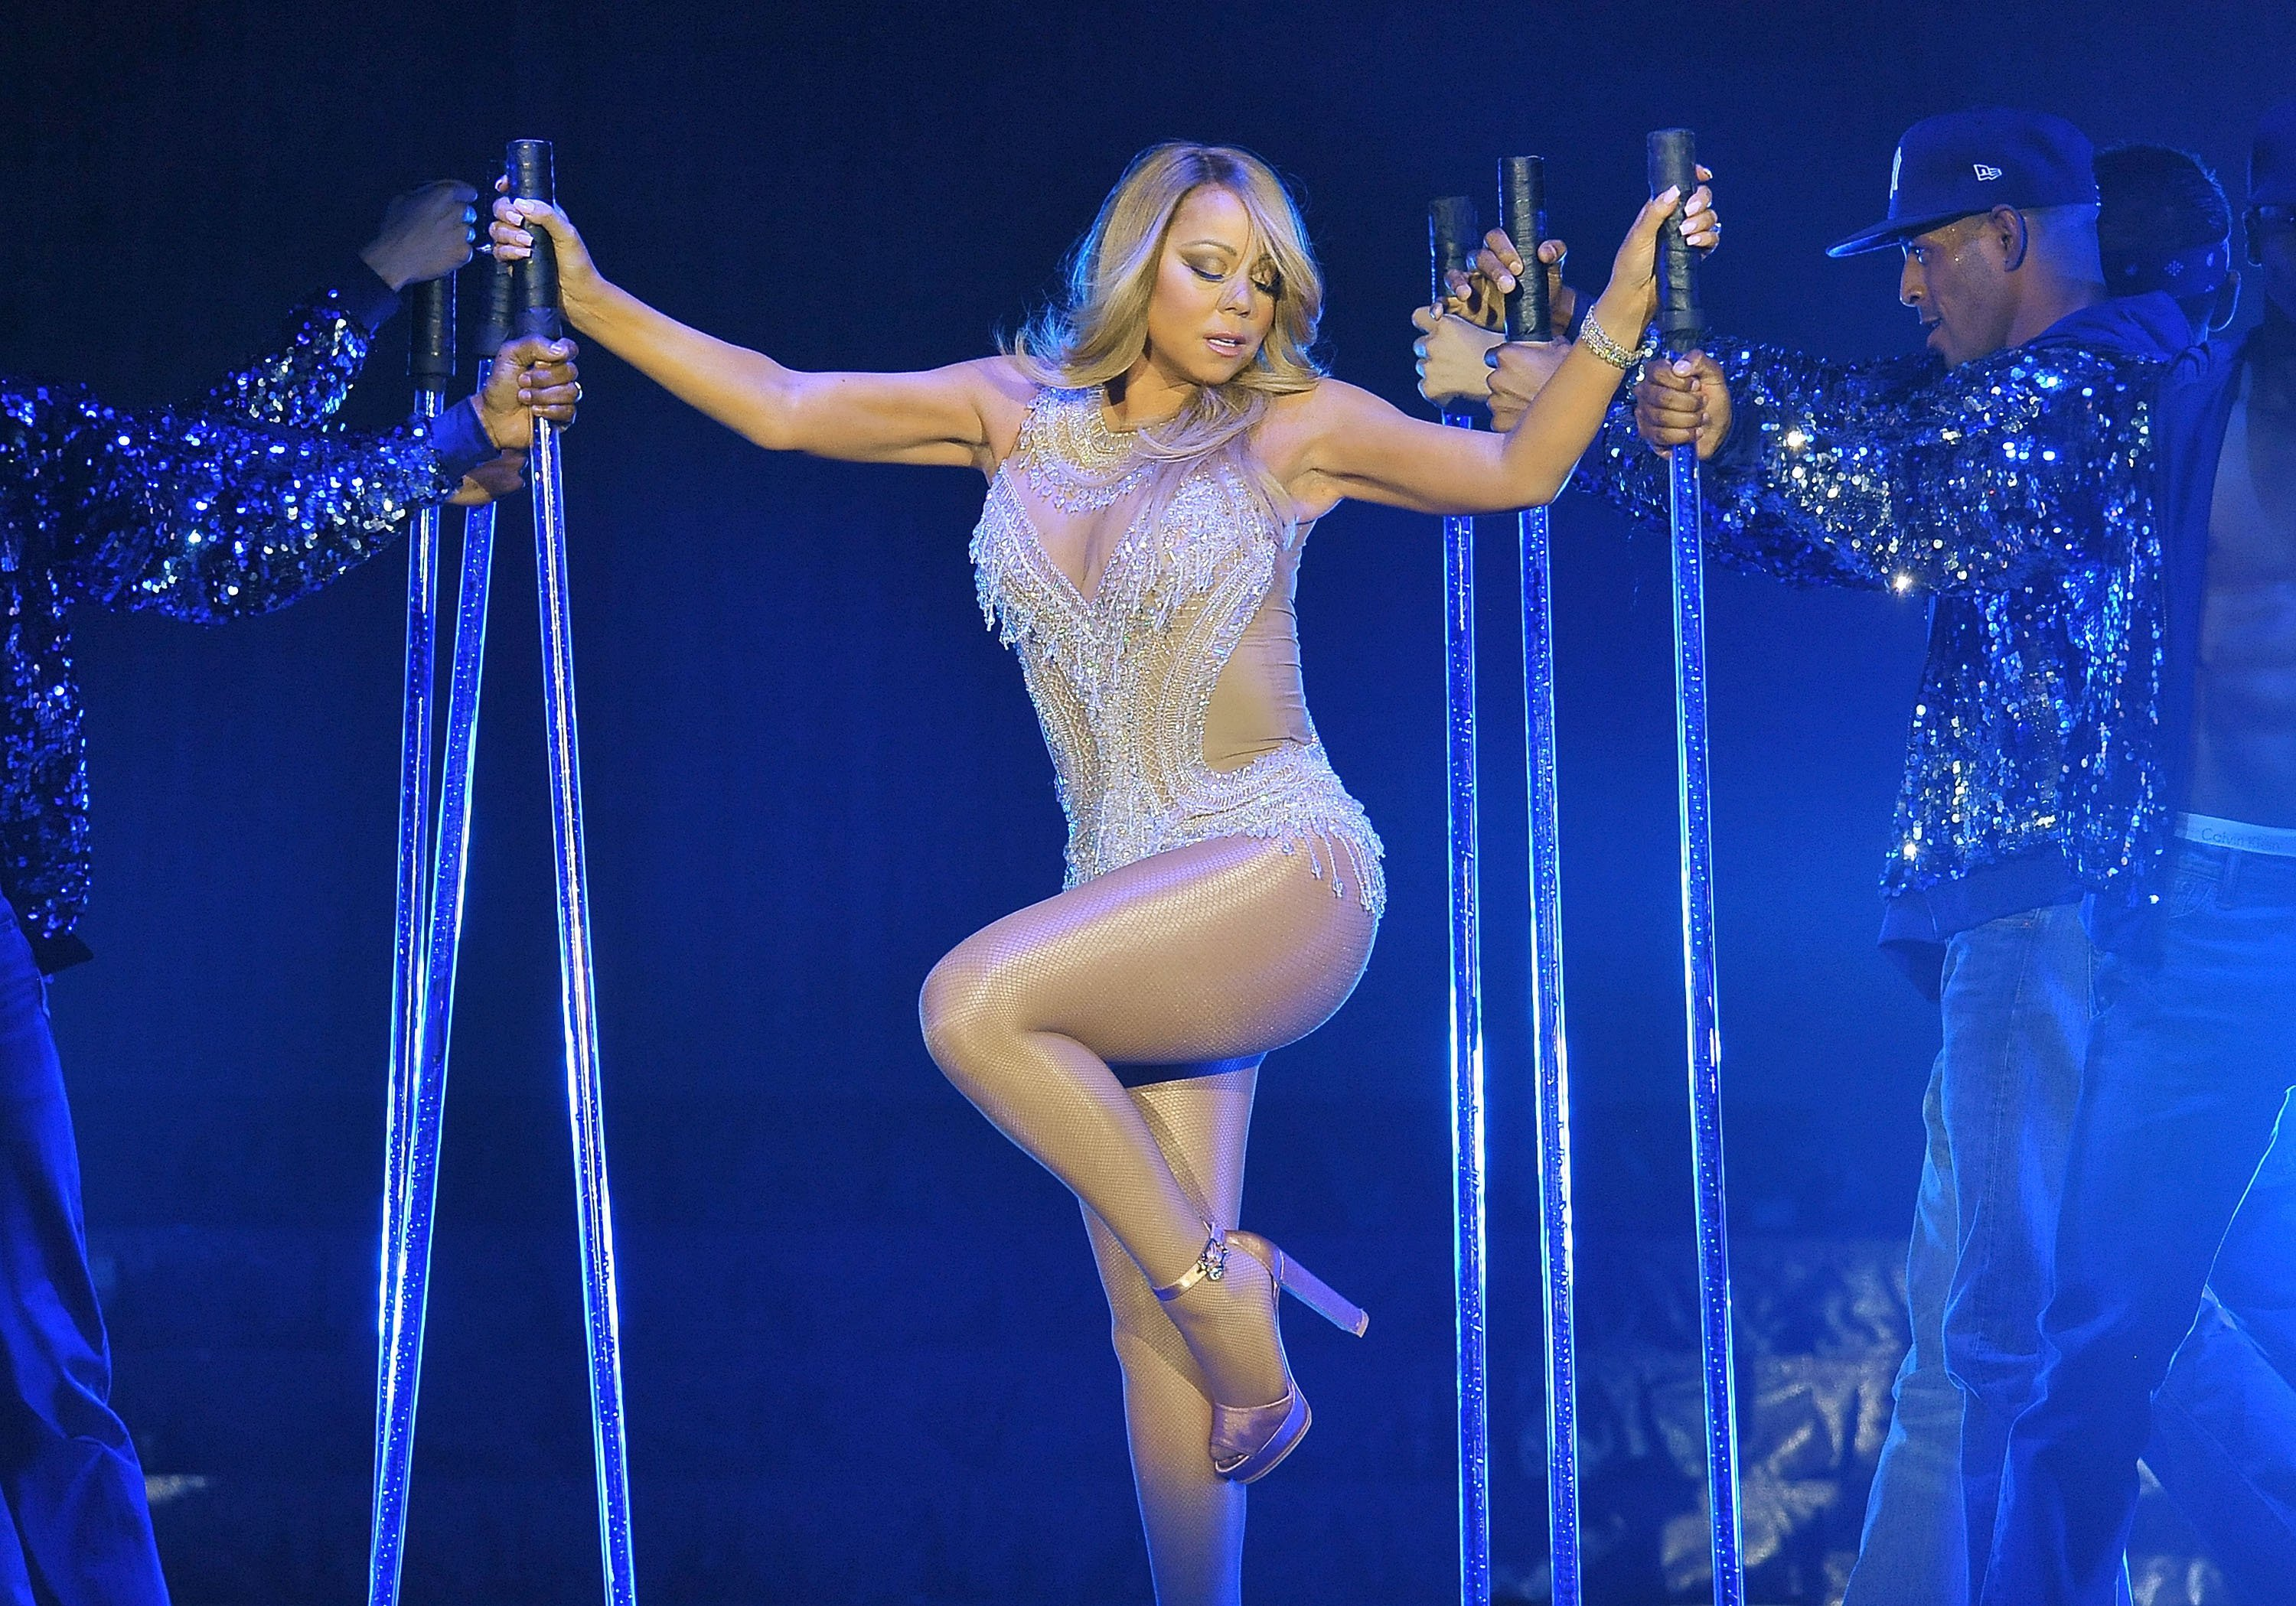 Mariah Carey performs live on stage at The O2 Arena in London, England on Mar. 23, 2016 | Photo: Getty Images